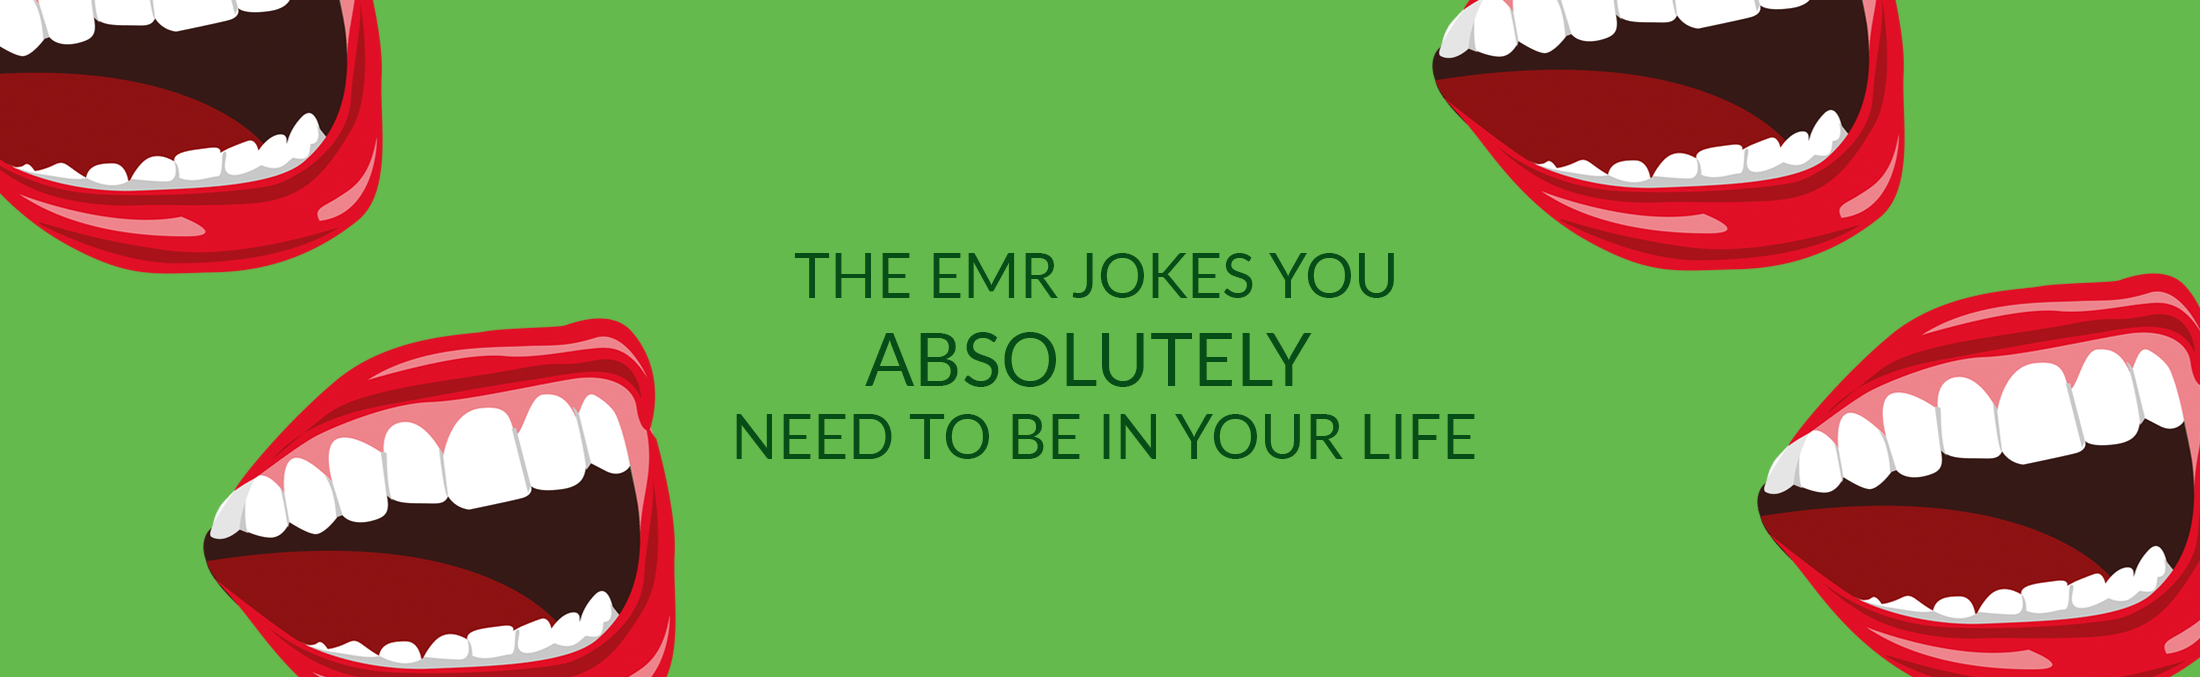 EMR hipaa and icd10 jokes